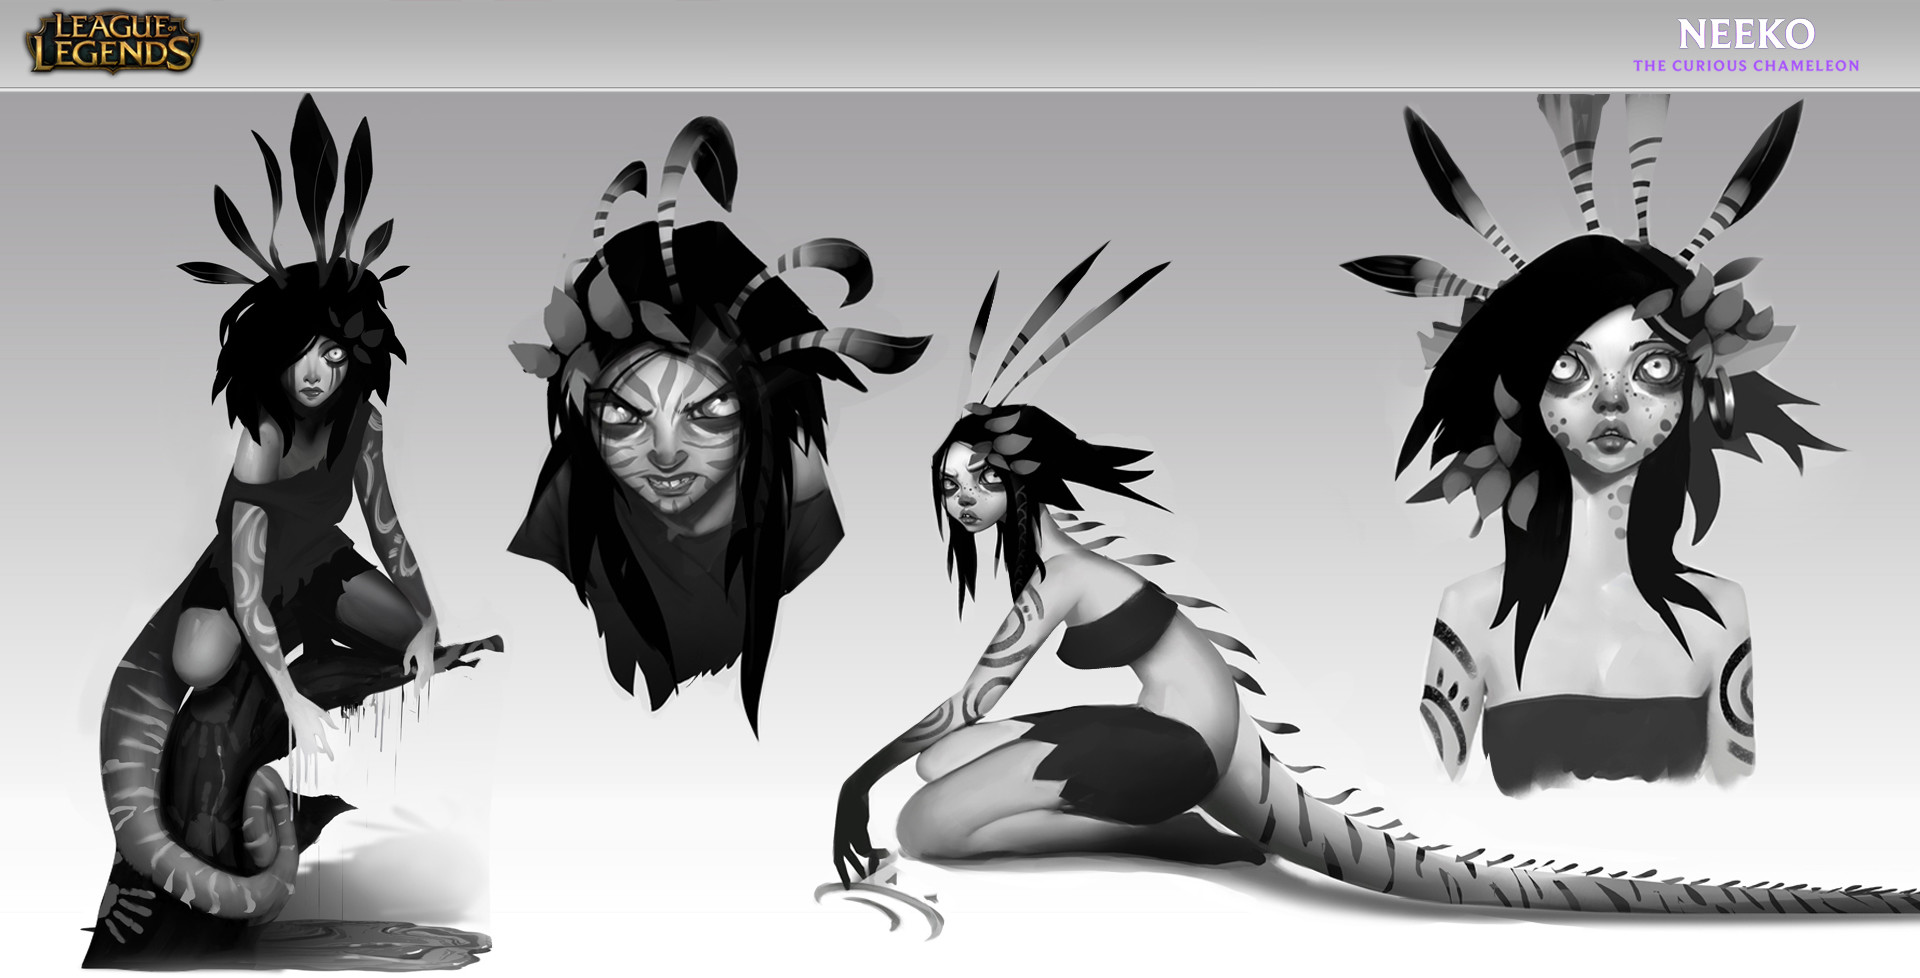 Early Concepts to find who is Neeko